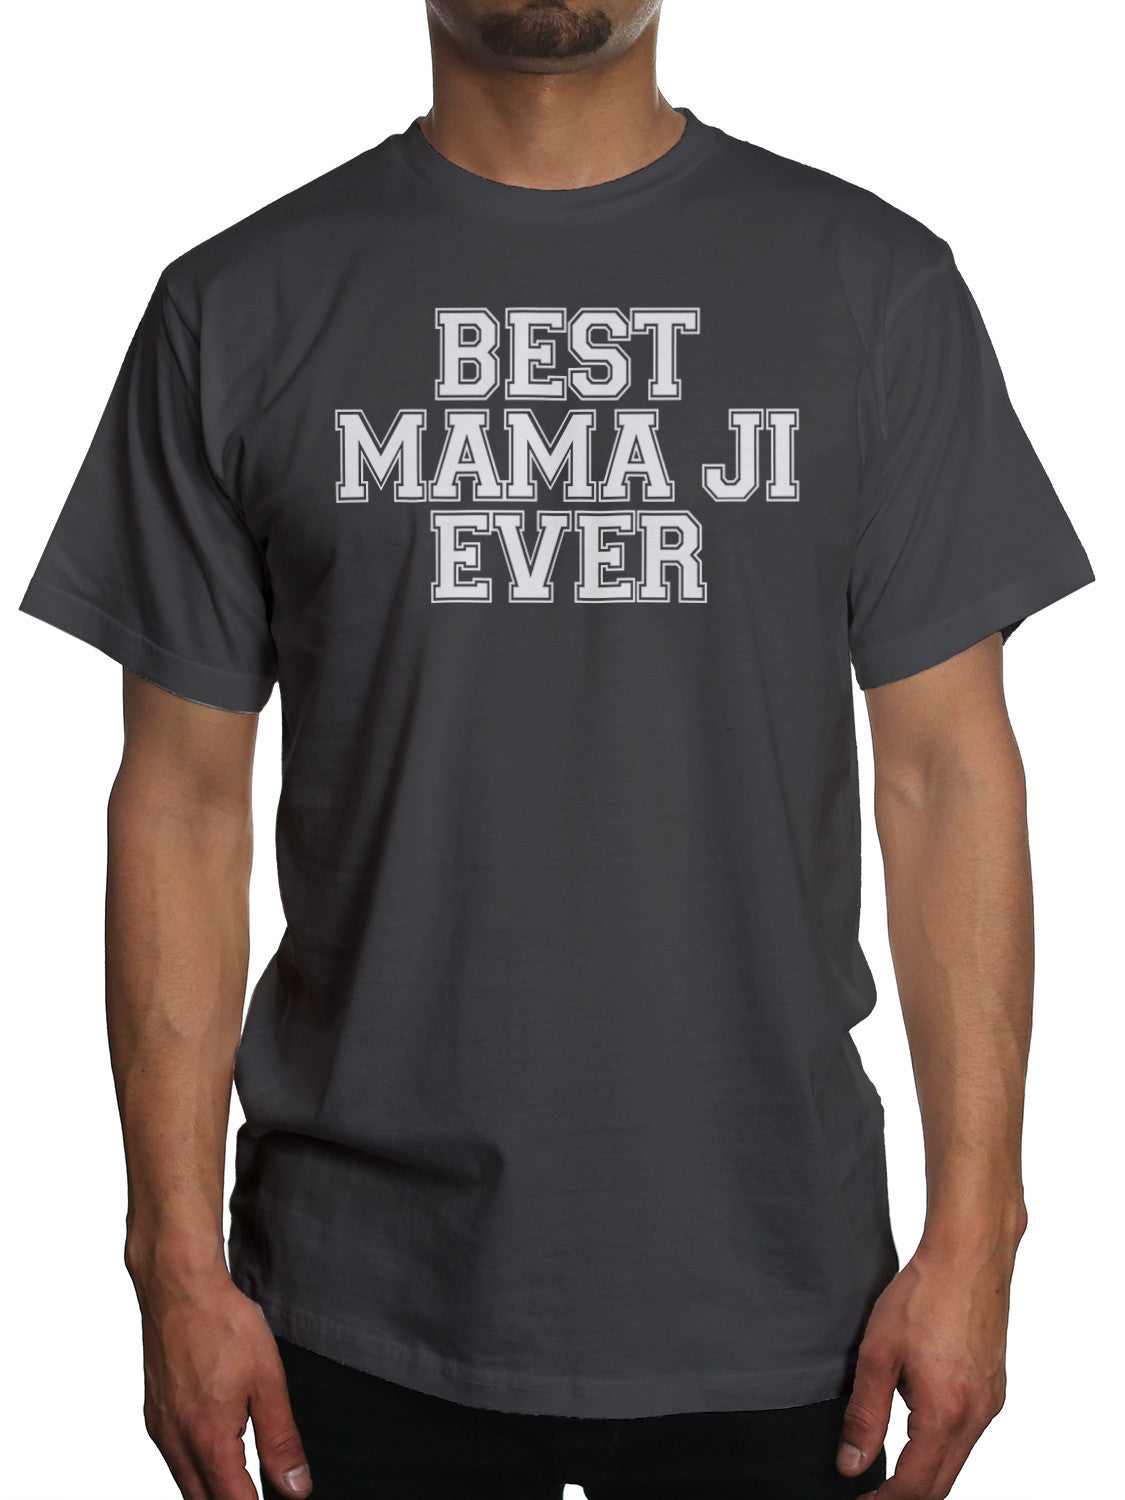 Best Mama Ji Ever